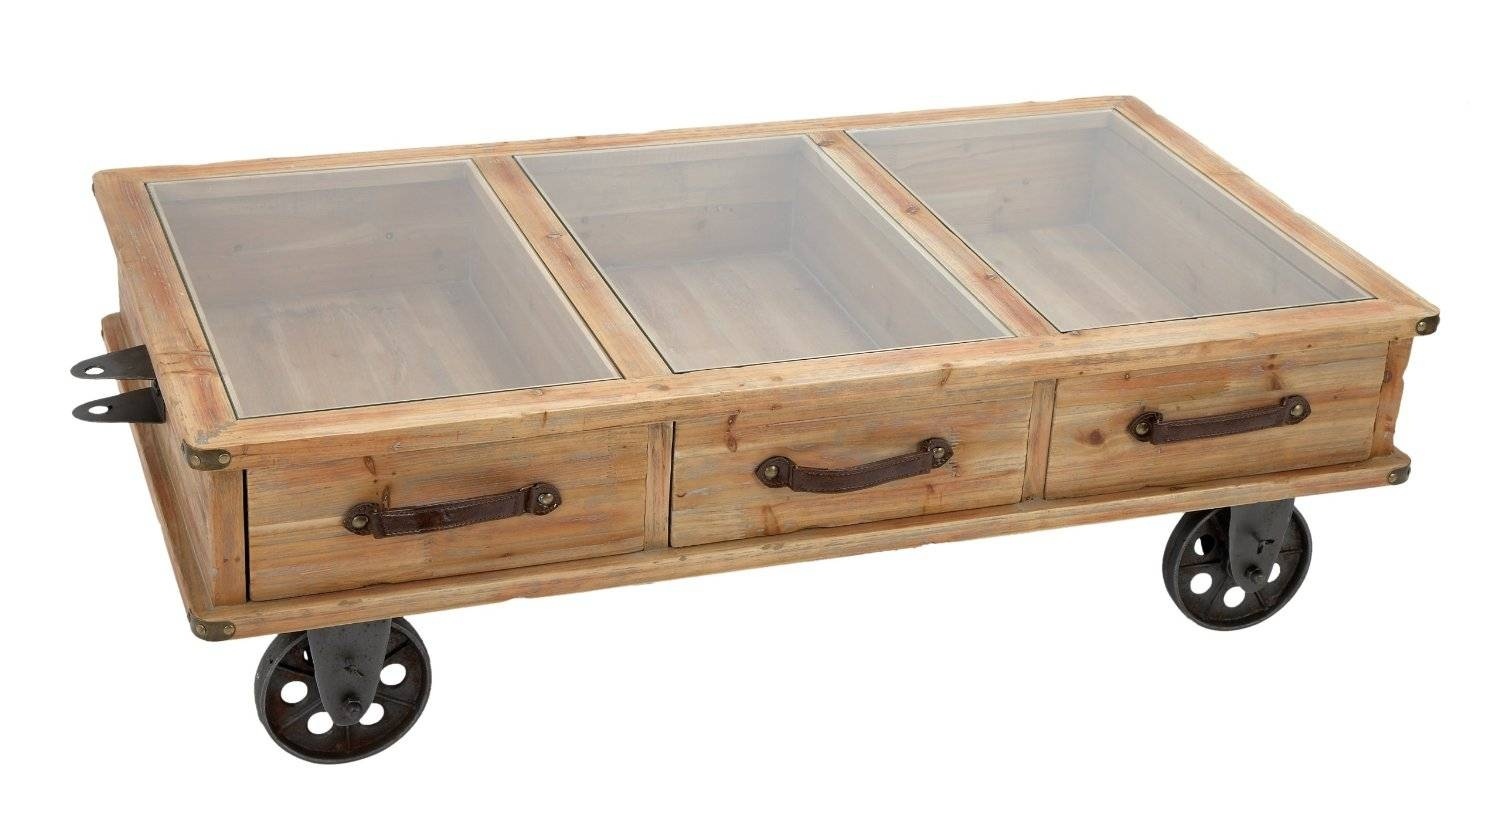 Furniture. Used Stained Wooden Chest Coffee Table With Storage And regarding Glass Coffee Tables With Casters (Image 16 of 30)